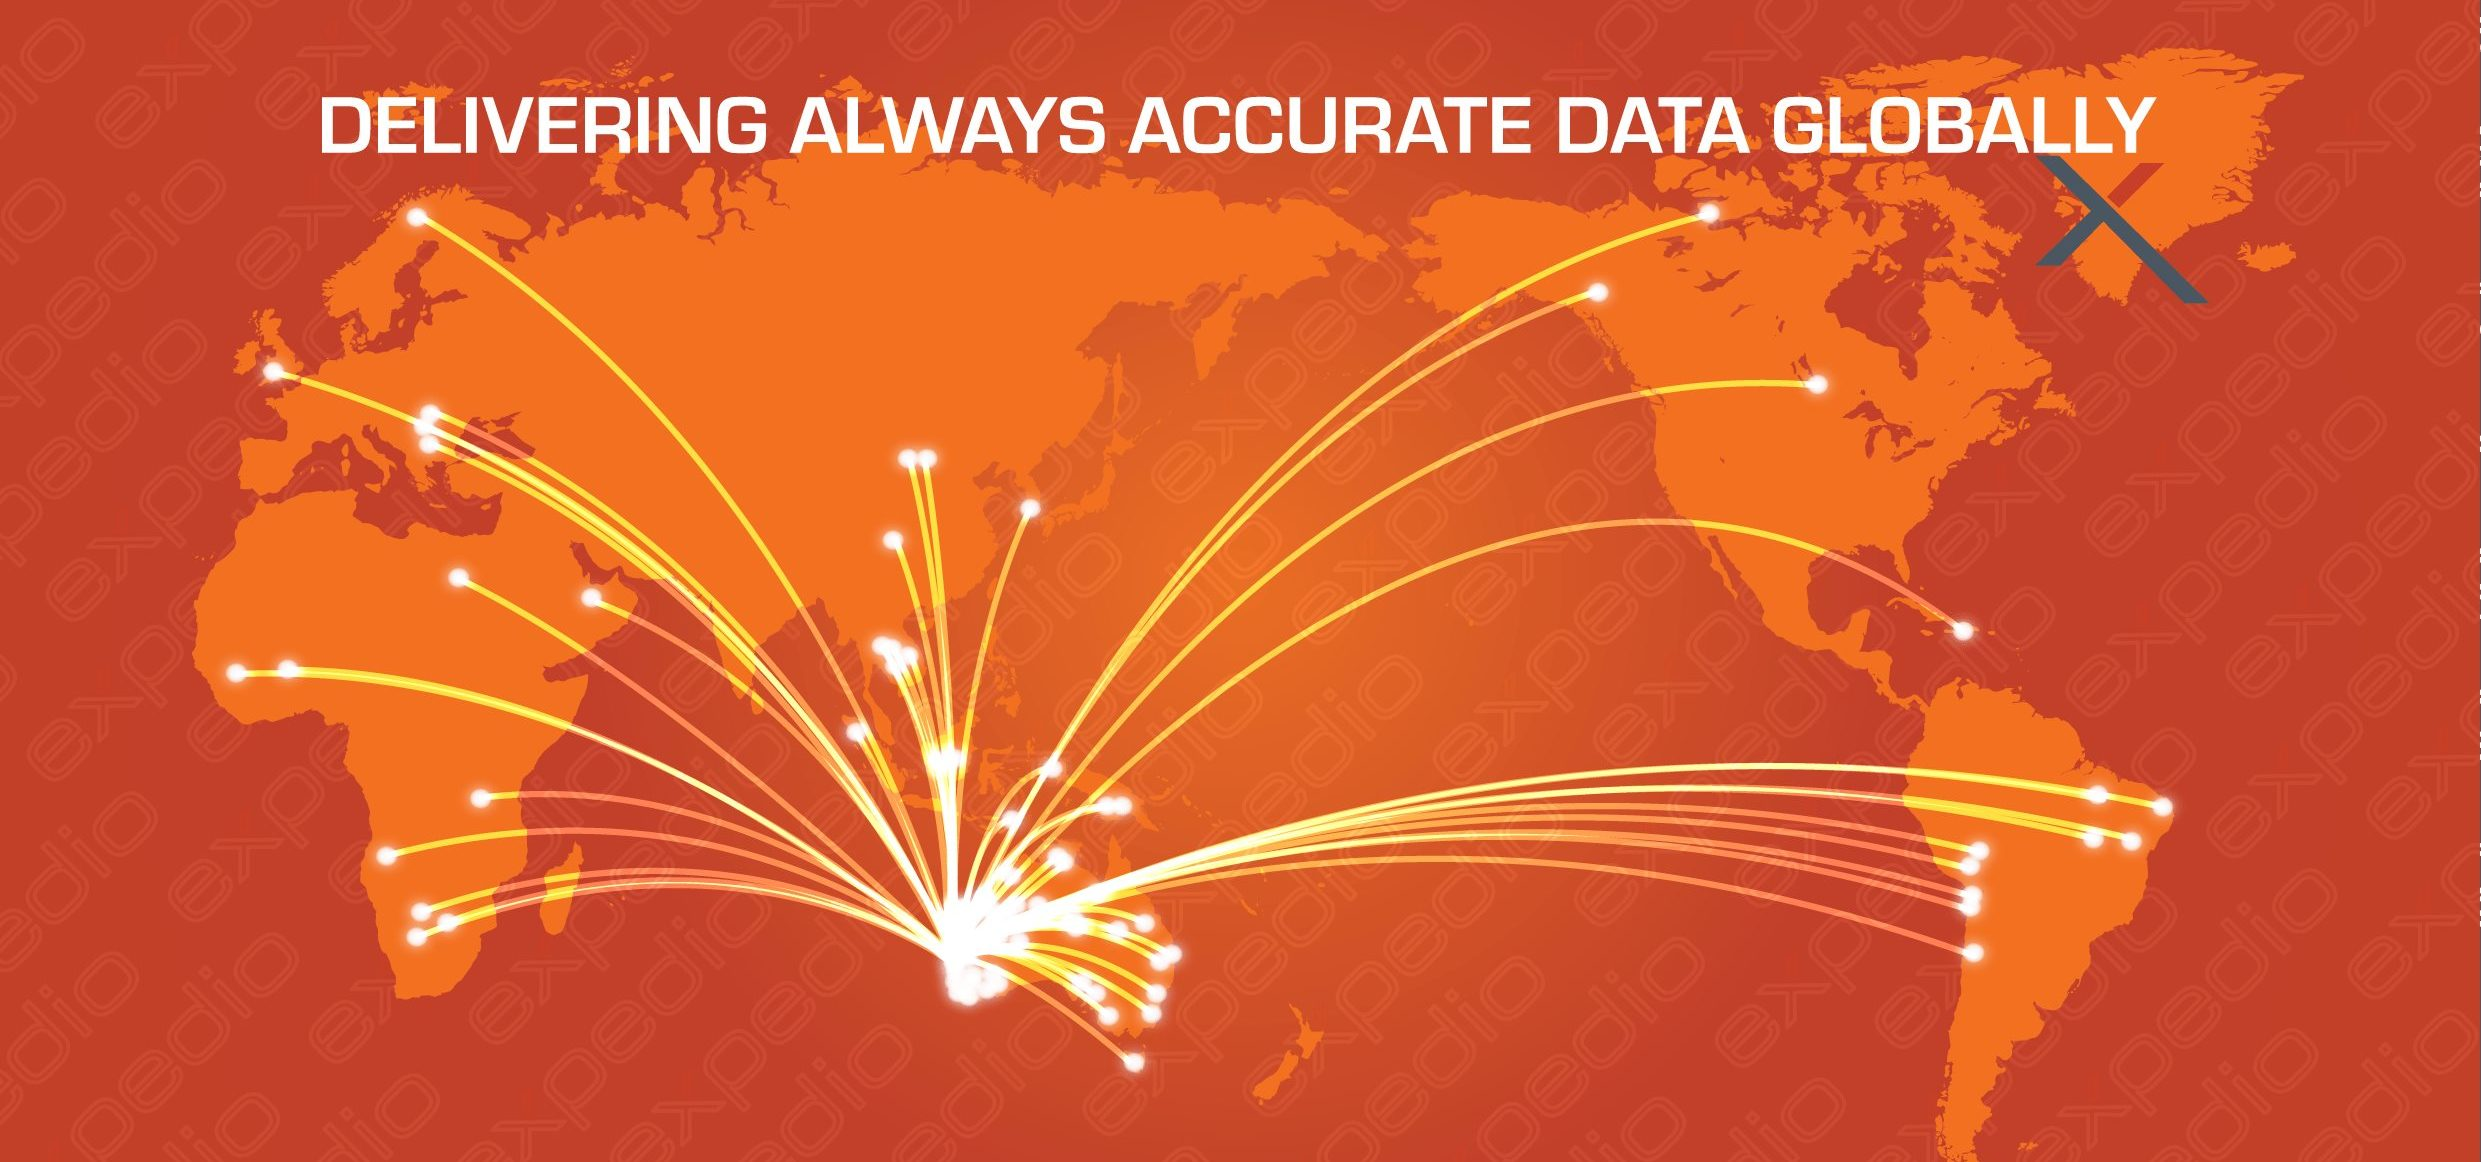 Delivering Always Accurate Data Globally